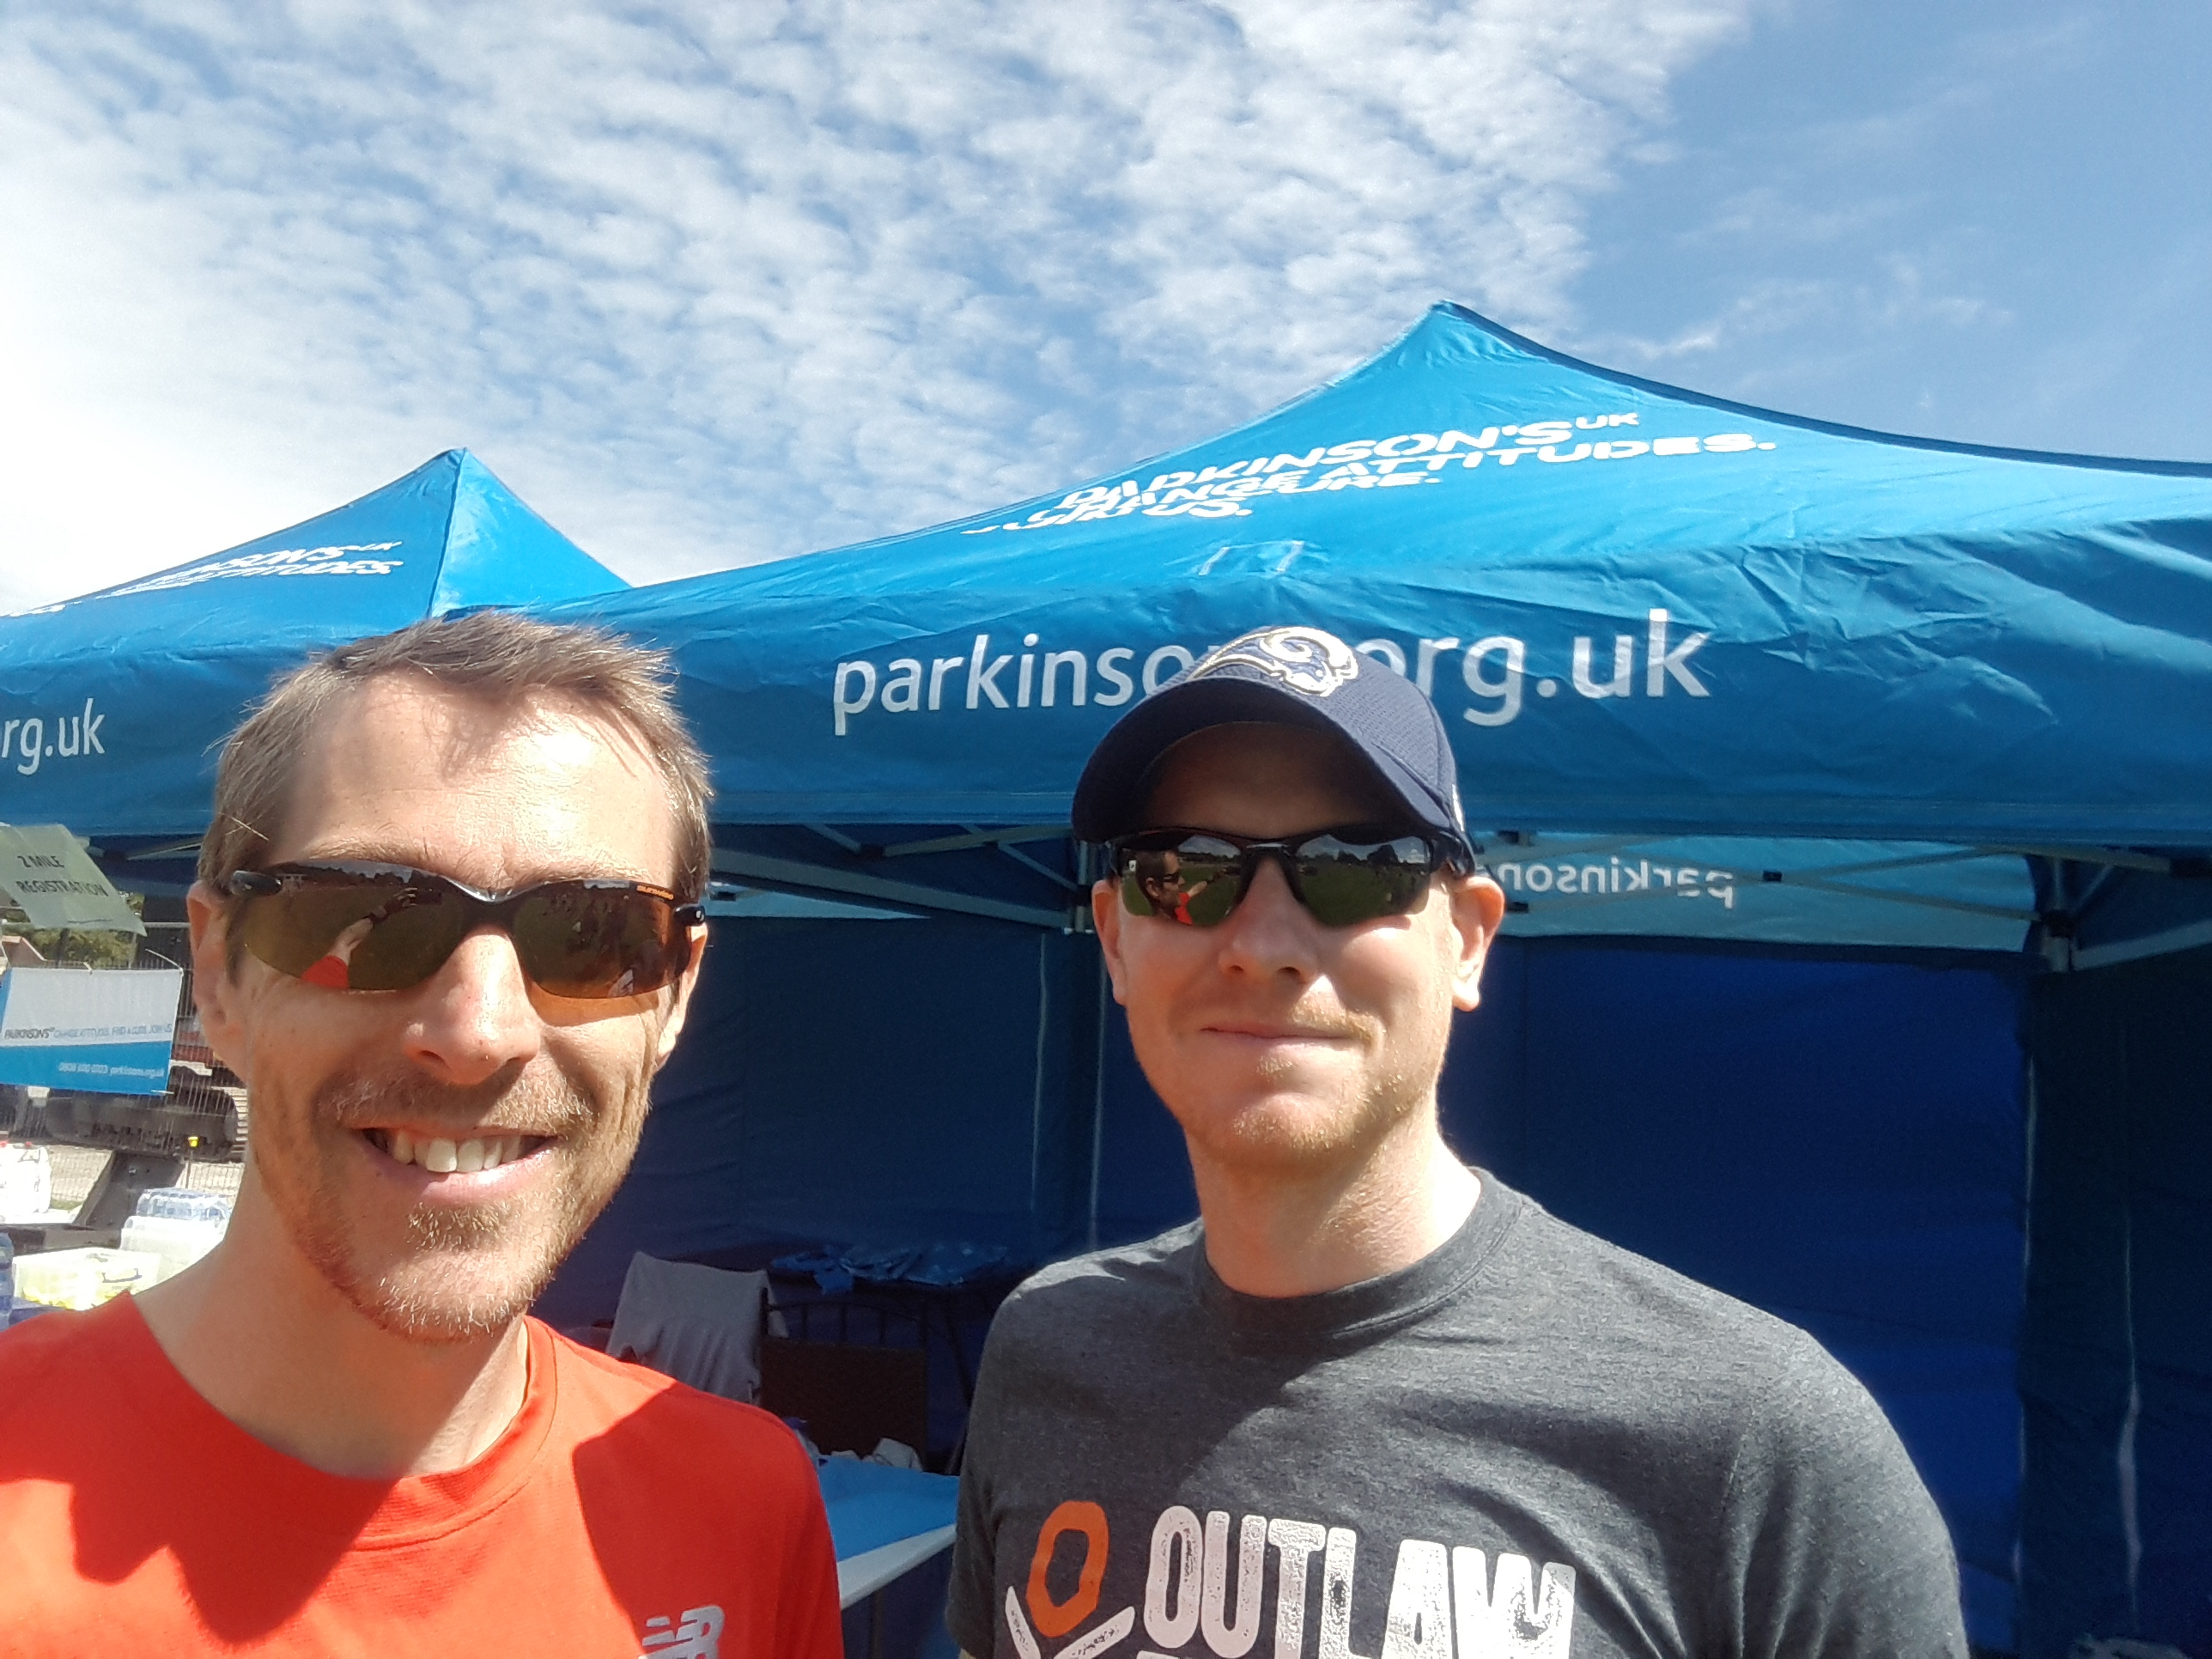 on a mission with Parkinson's UK